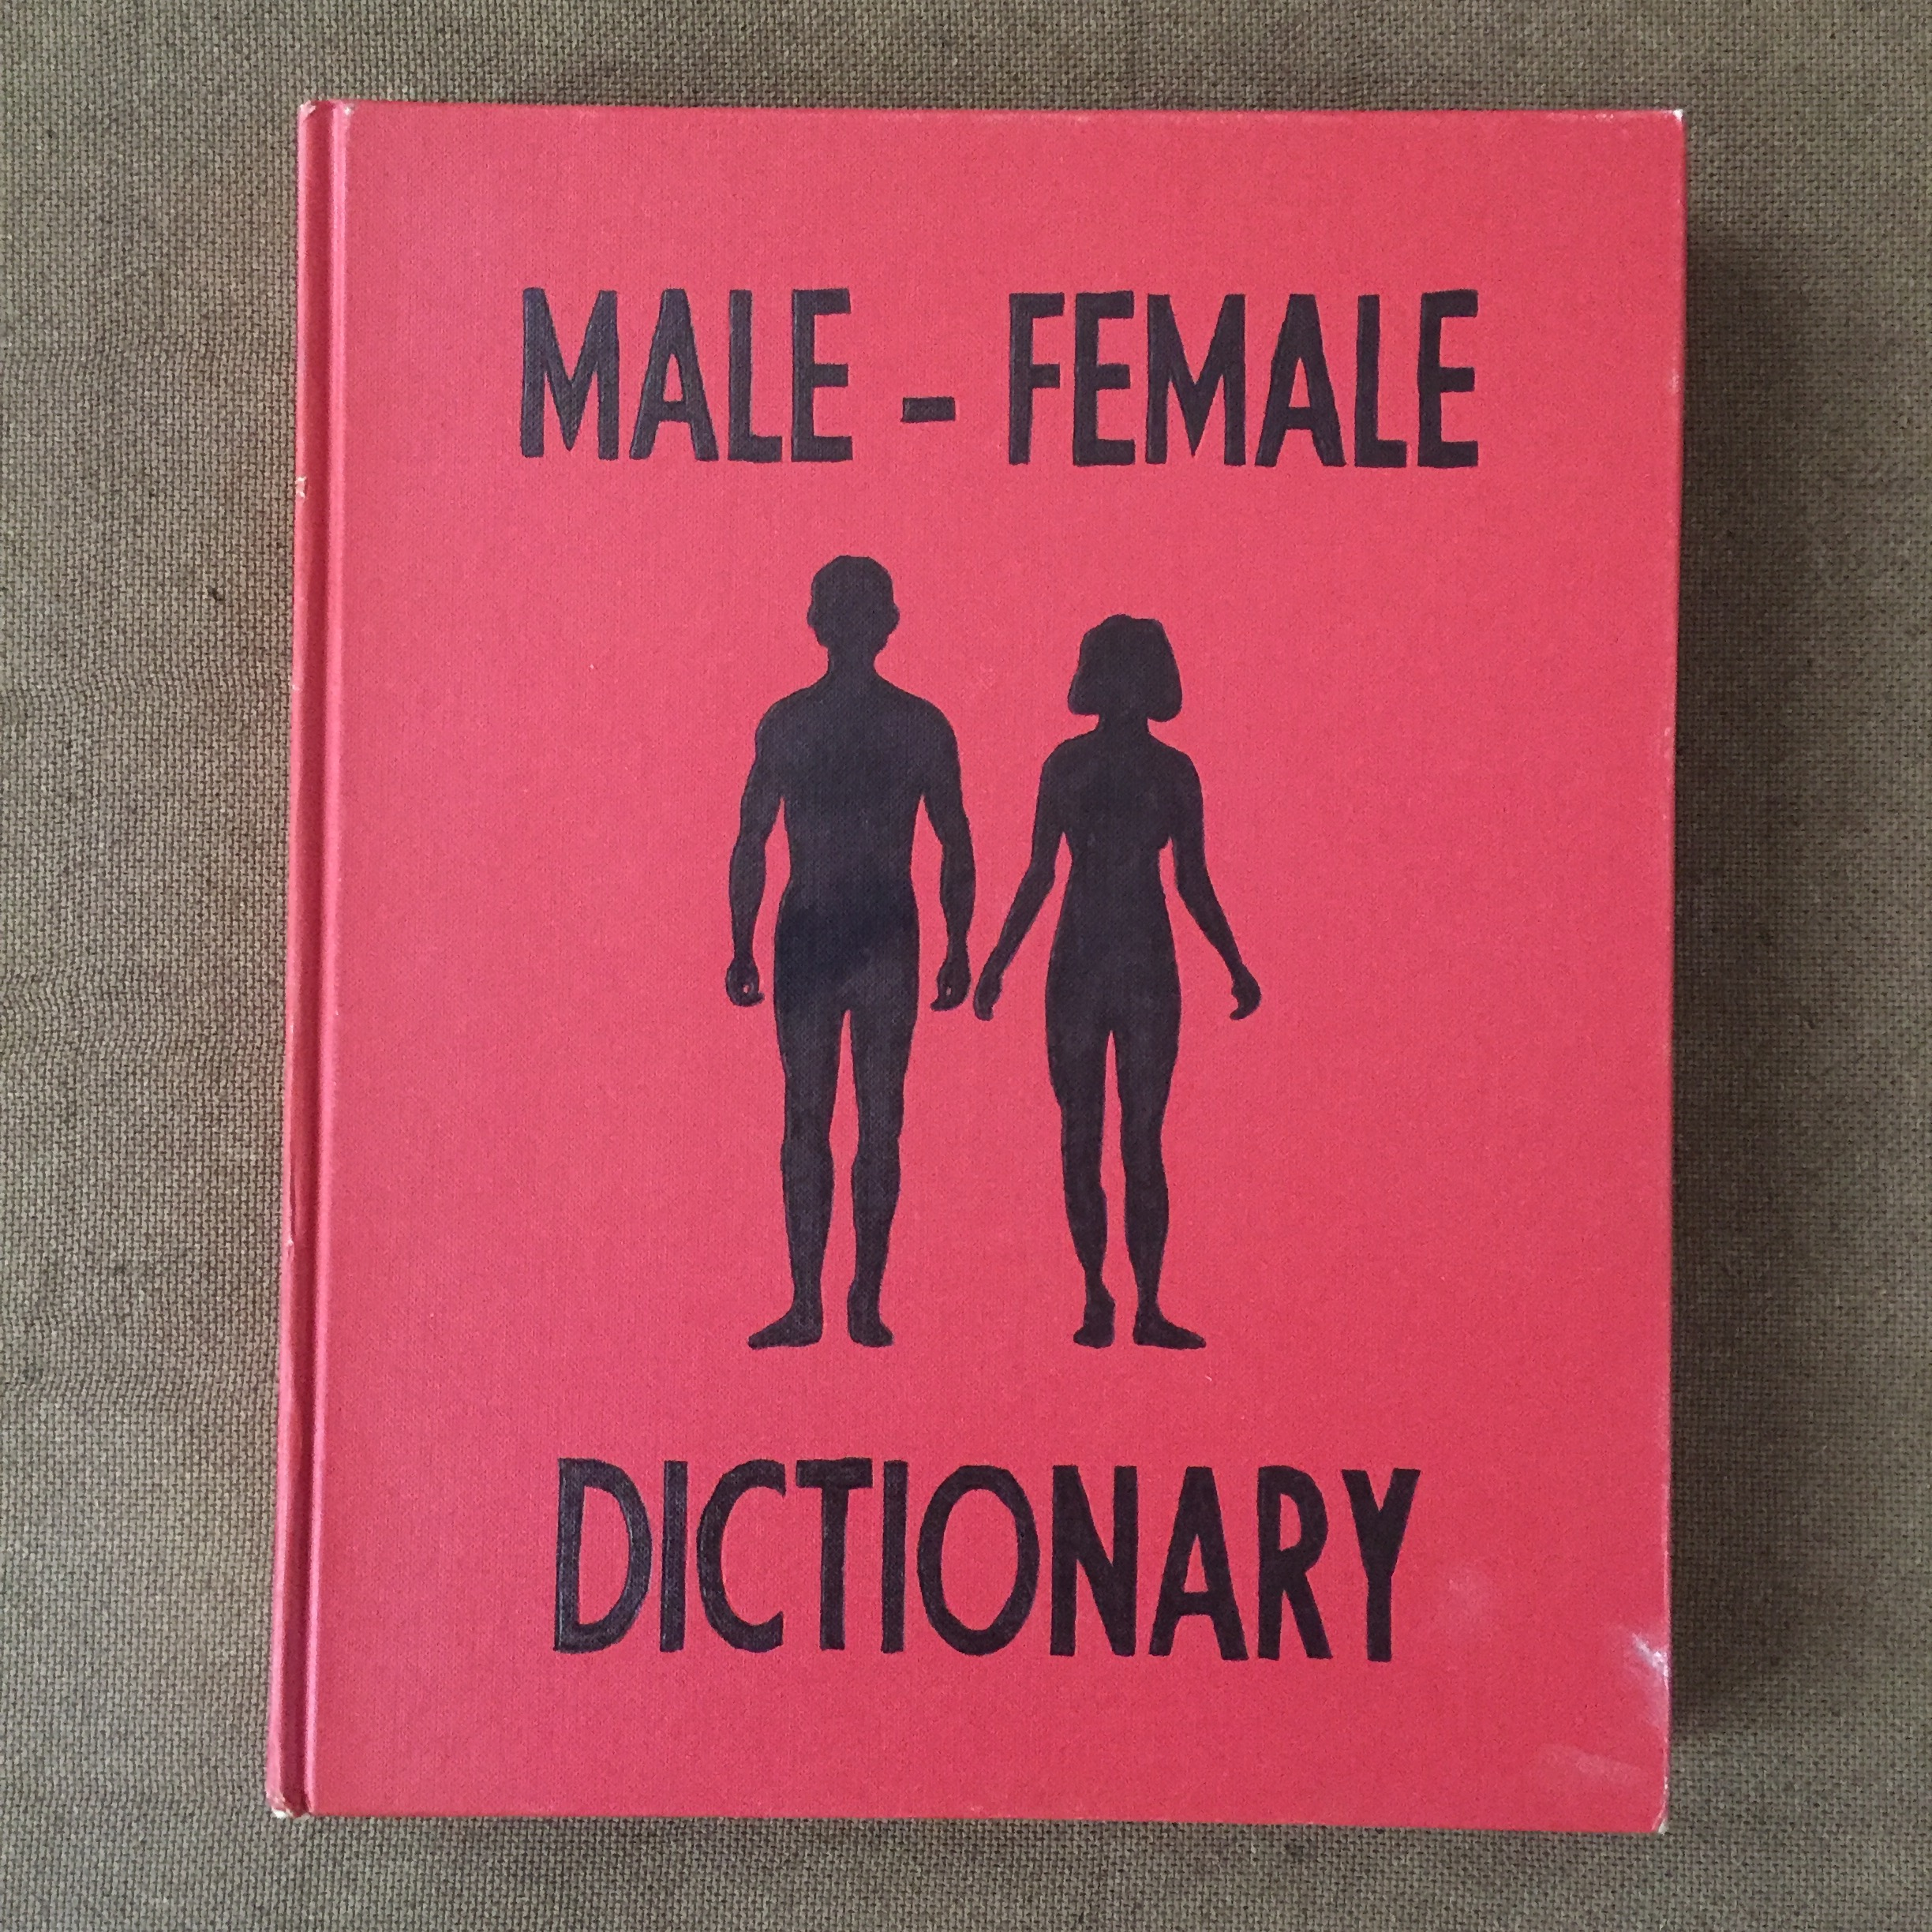 Male-Female Dictionary